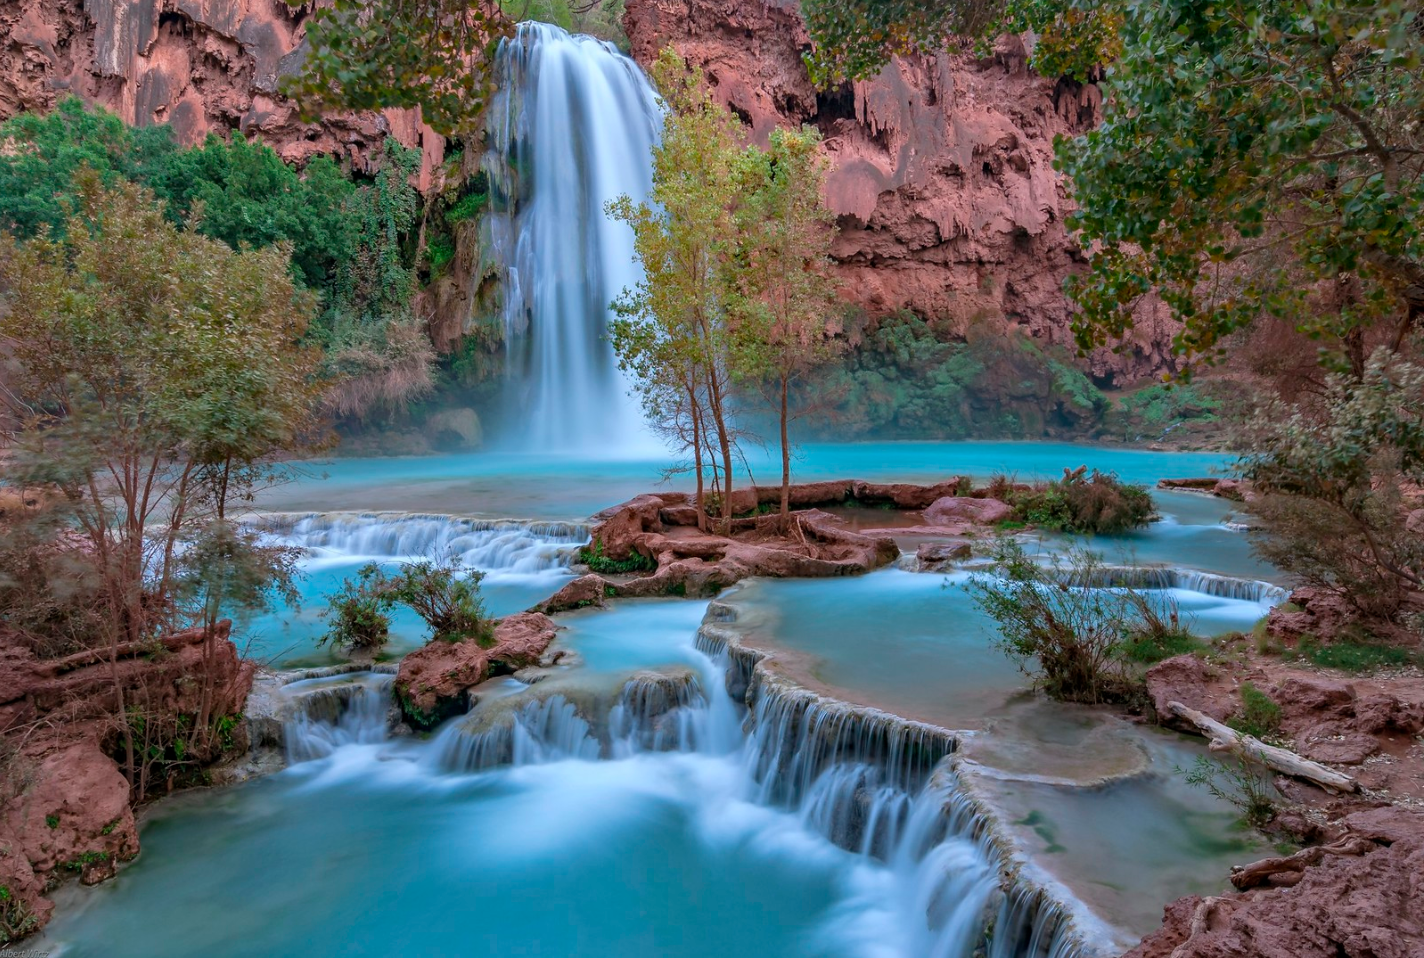 The beautiful blue waters of Havasu Falls truly makes this one of the most surreal places in all of Arizona.